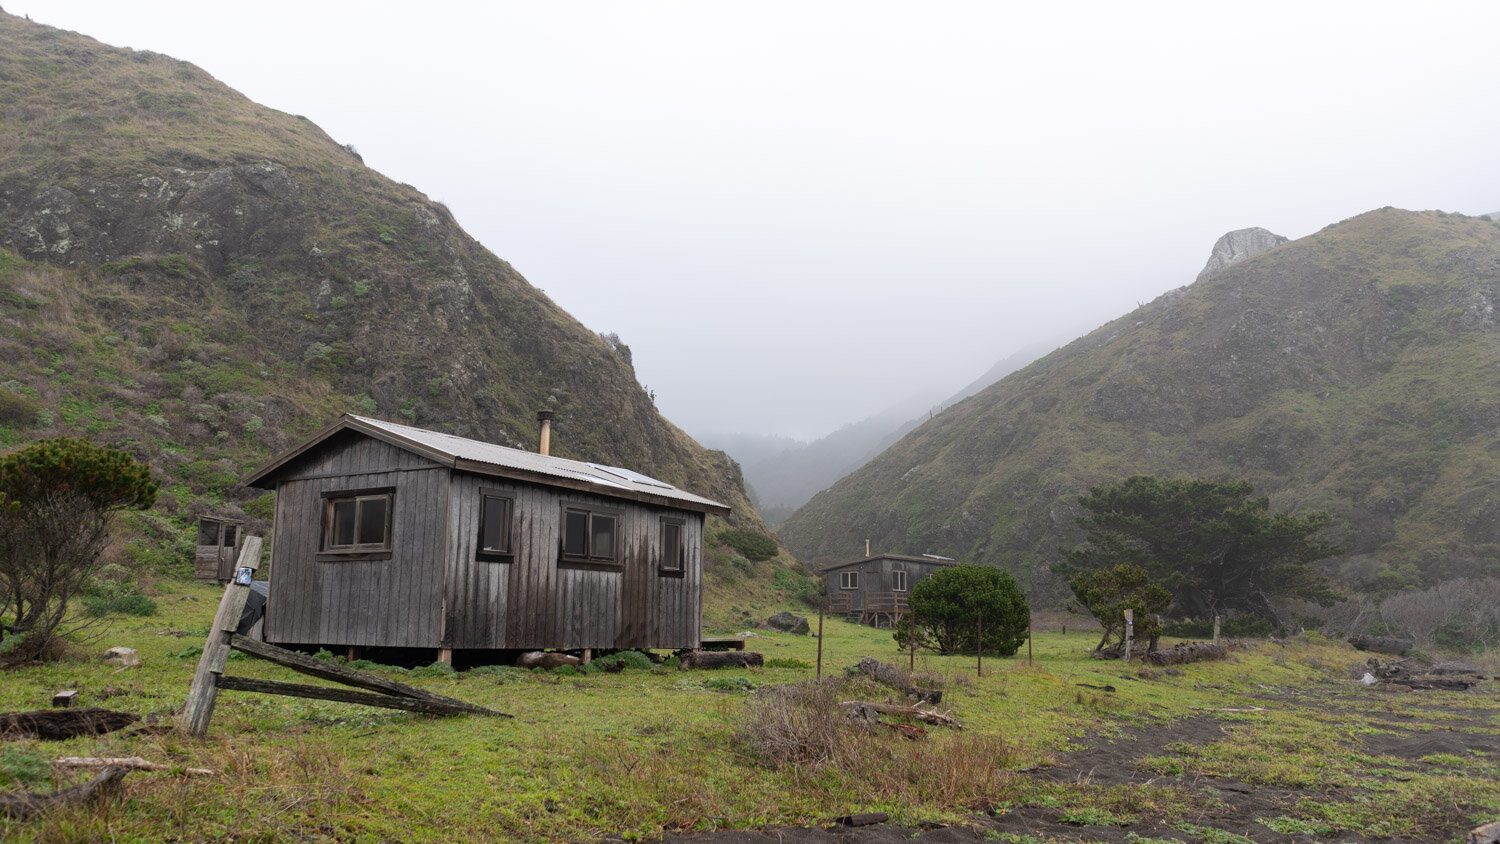 Houses on the Lost Coast in Northern California